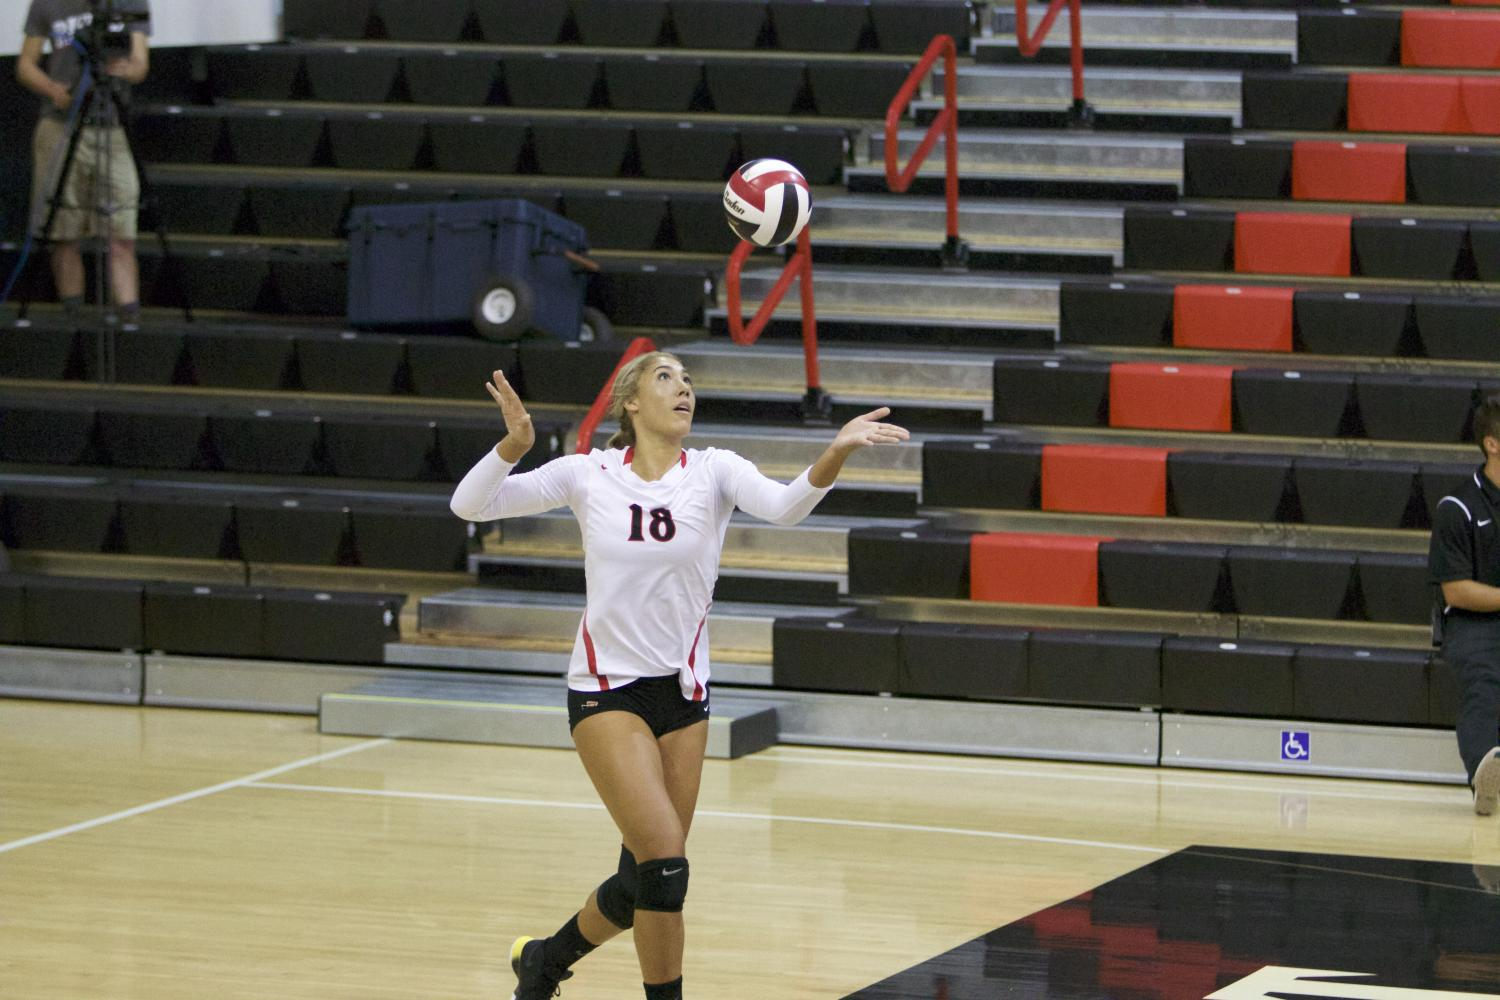 Senior outside hitter serves during SDSU's match against Loyola Marymount on Sept. 8.